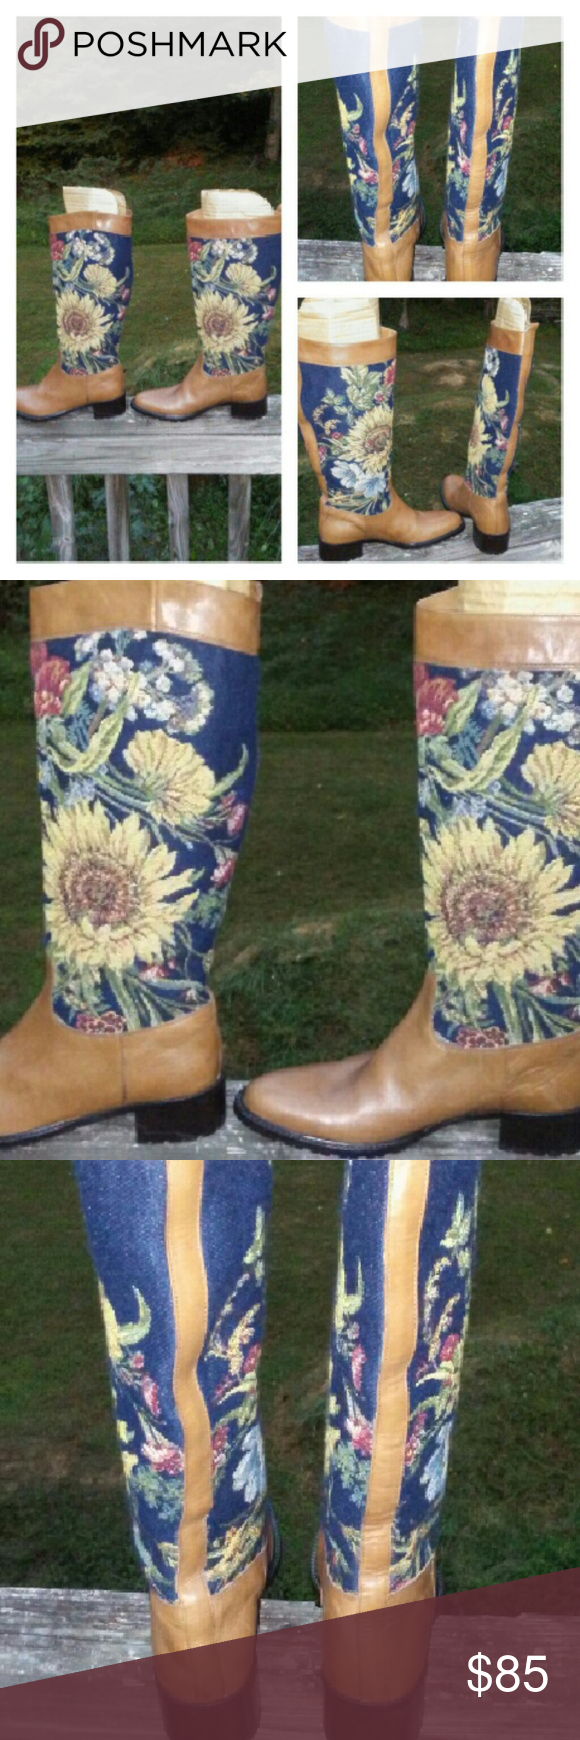 Vintage tapestry boots Italian GORGEOUS!!!!!! Sunflower Tapestry Lavorazione Artigiana  Shoes Lace Up Boots